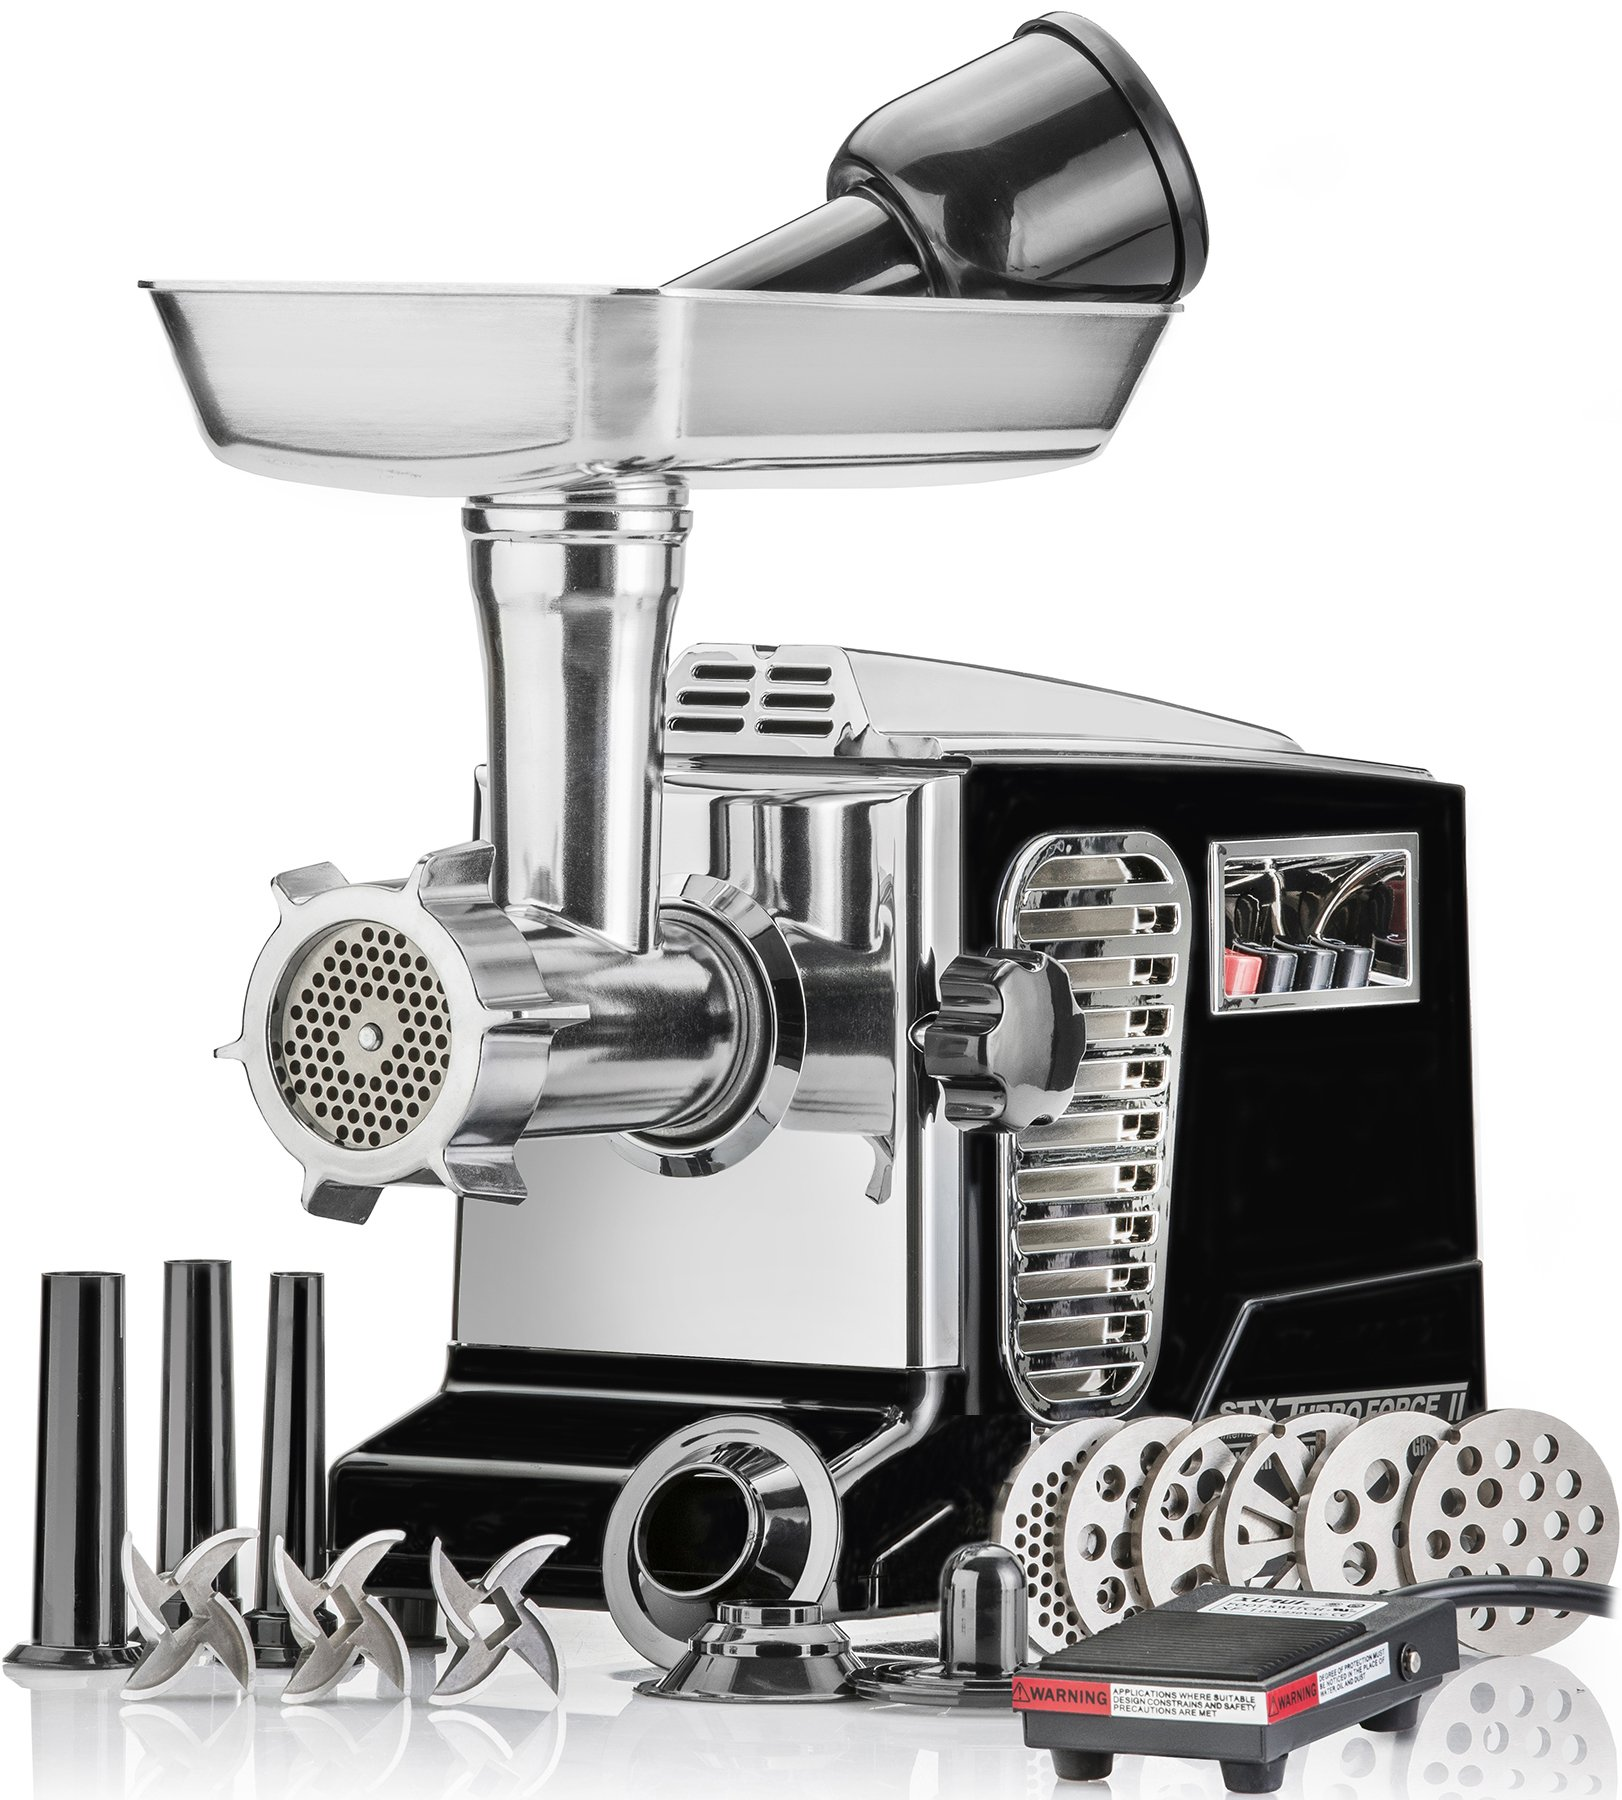 Electric Meat Grinder - Size #12 - Model STX-4000-TB2-PD - STX International Turboforce II - Air Cooling Patent - Foot Pedal Control, 6 Grinding Plates, 3 Cutting Blades, Kubbe & Sausage Tubes - Black by STX INTERNATIONAL